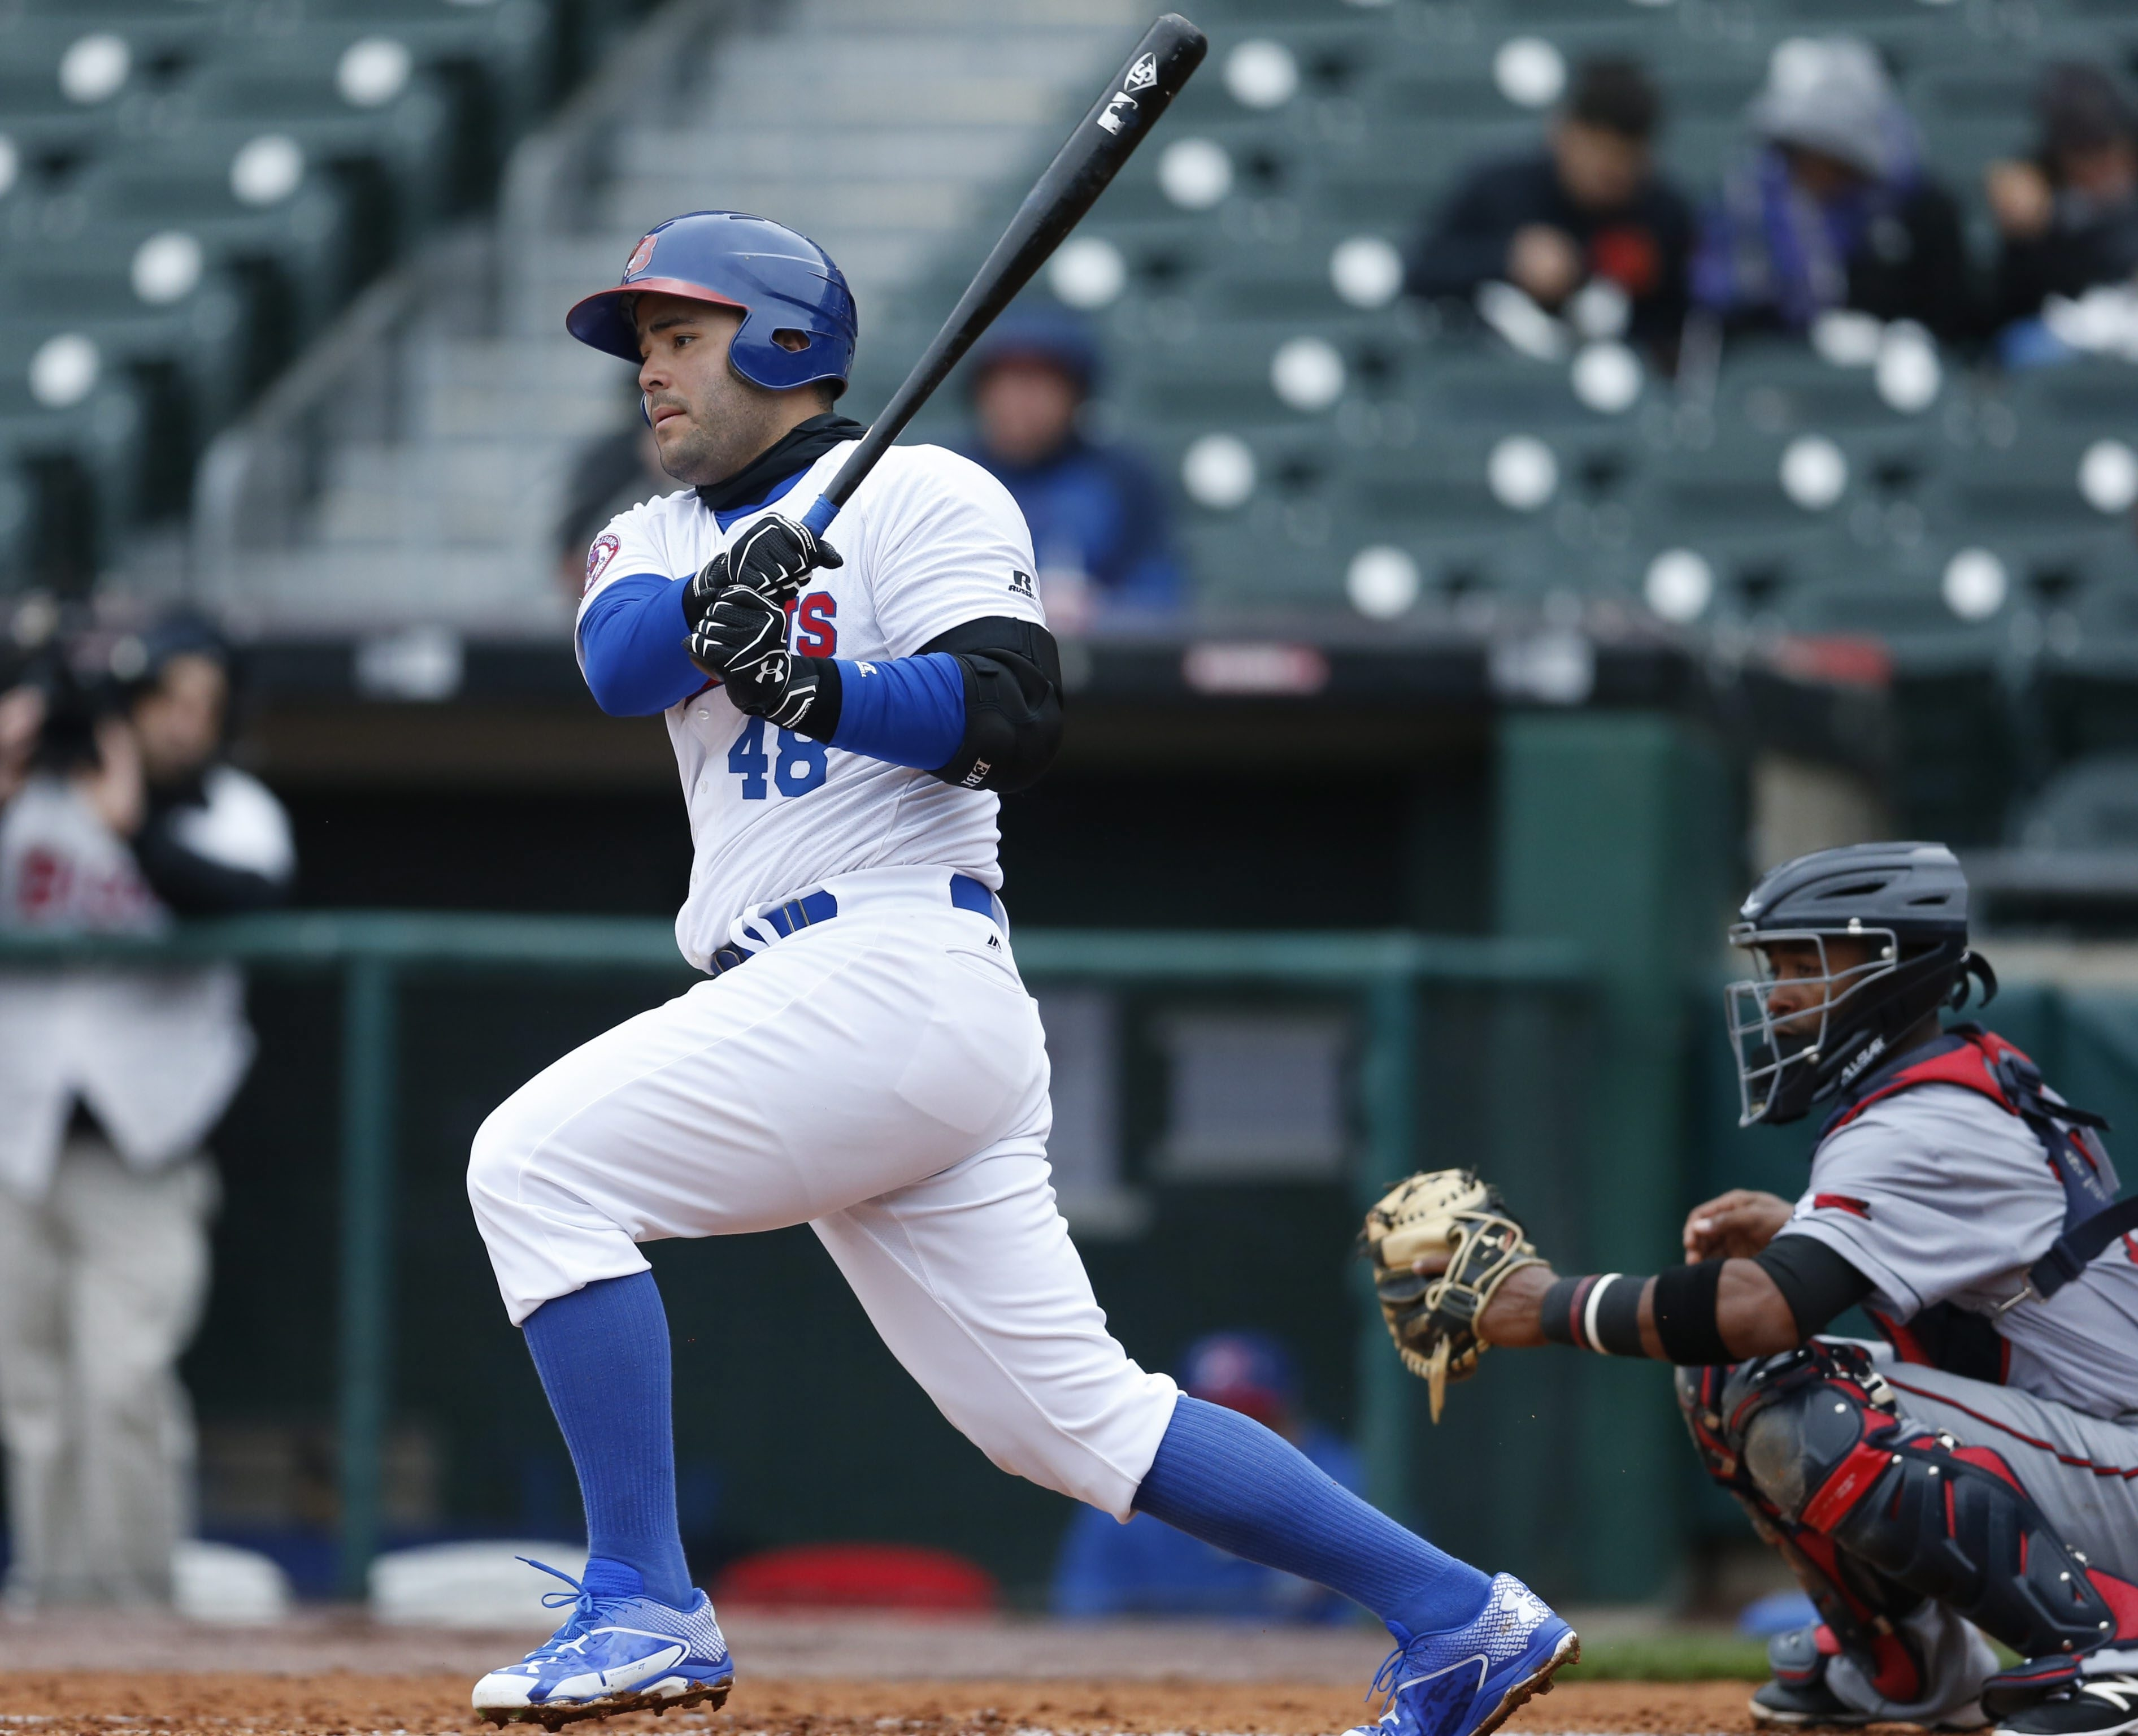 The Bisons' Jesus Montero has been producing at the plate.